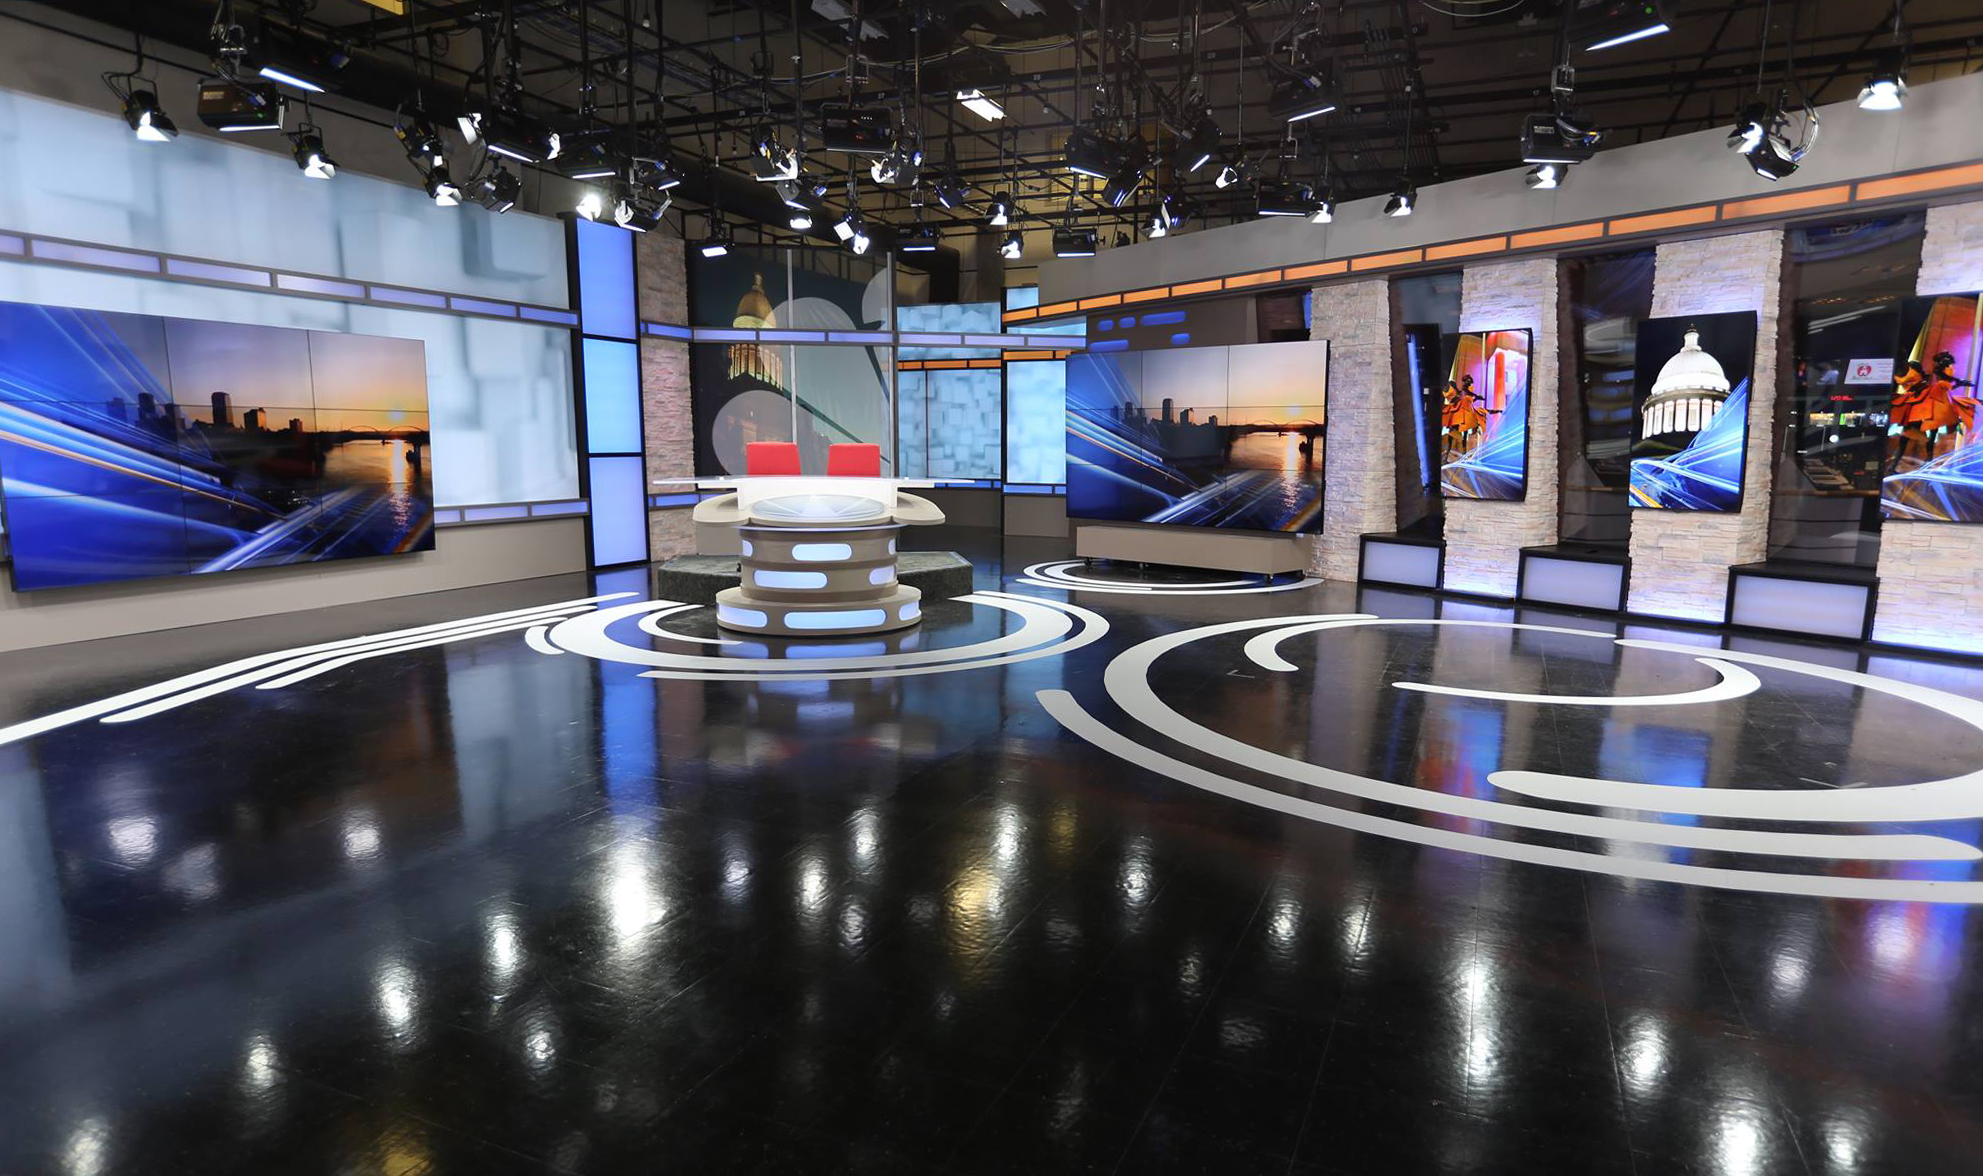 ncs_kark-4-news-tv-studio-arkansas_0001